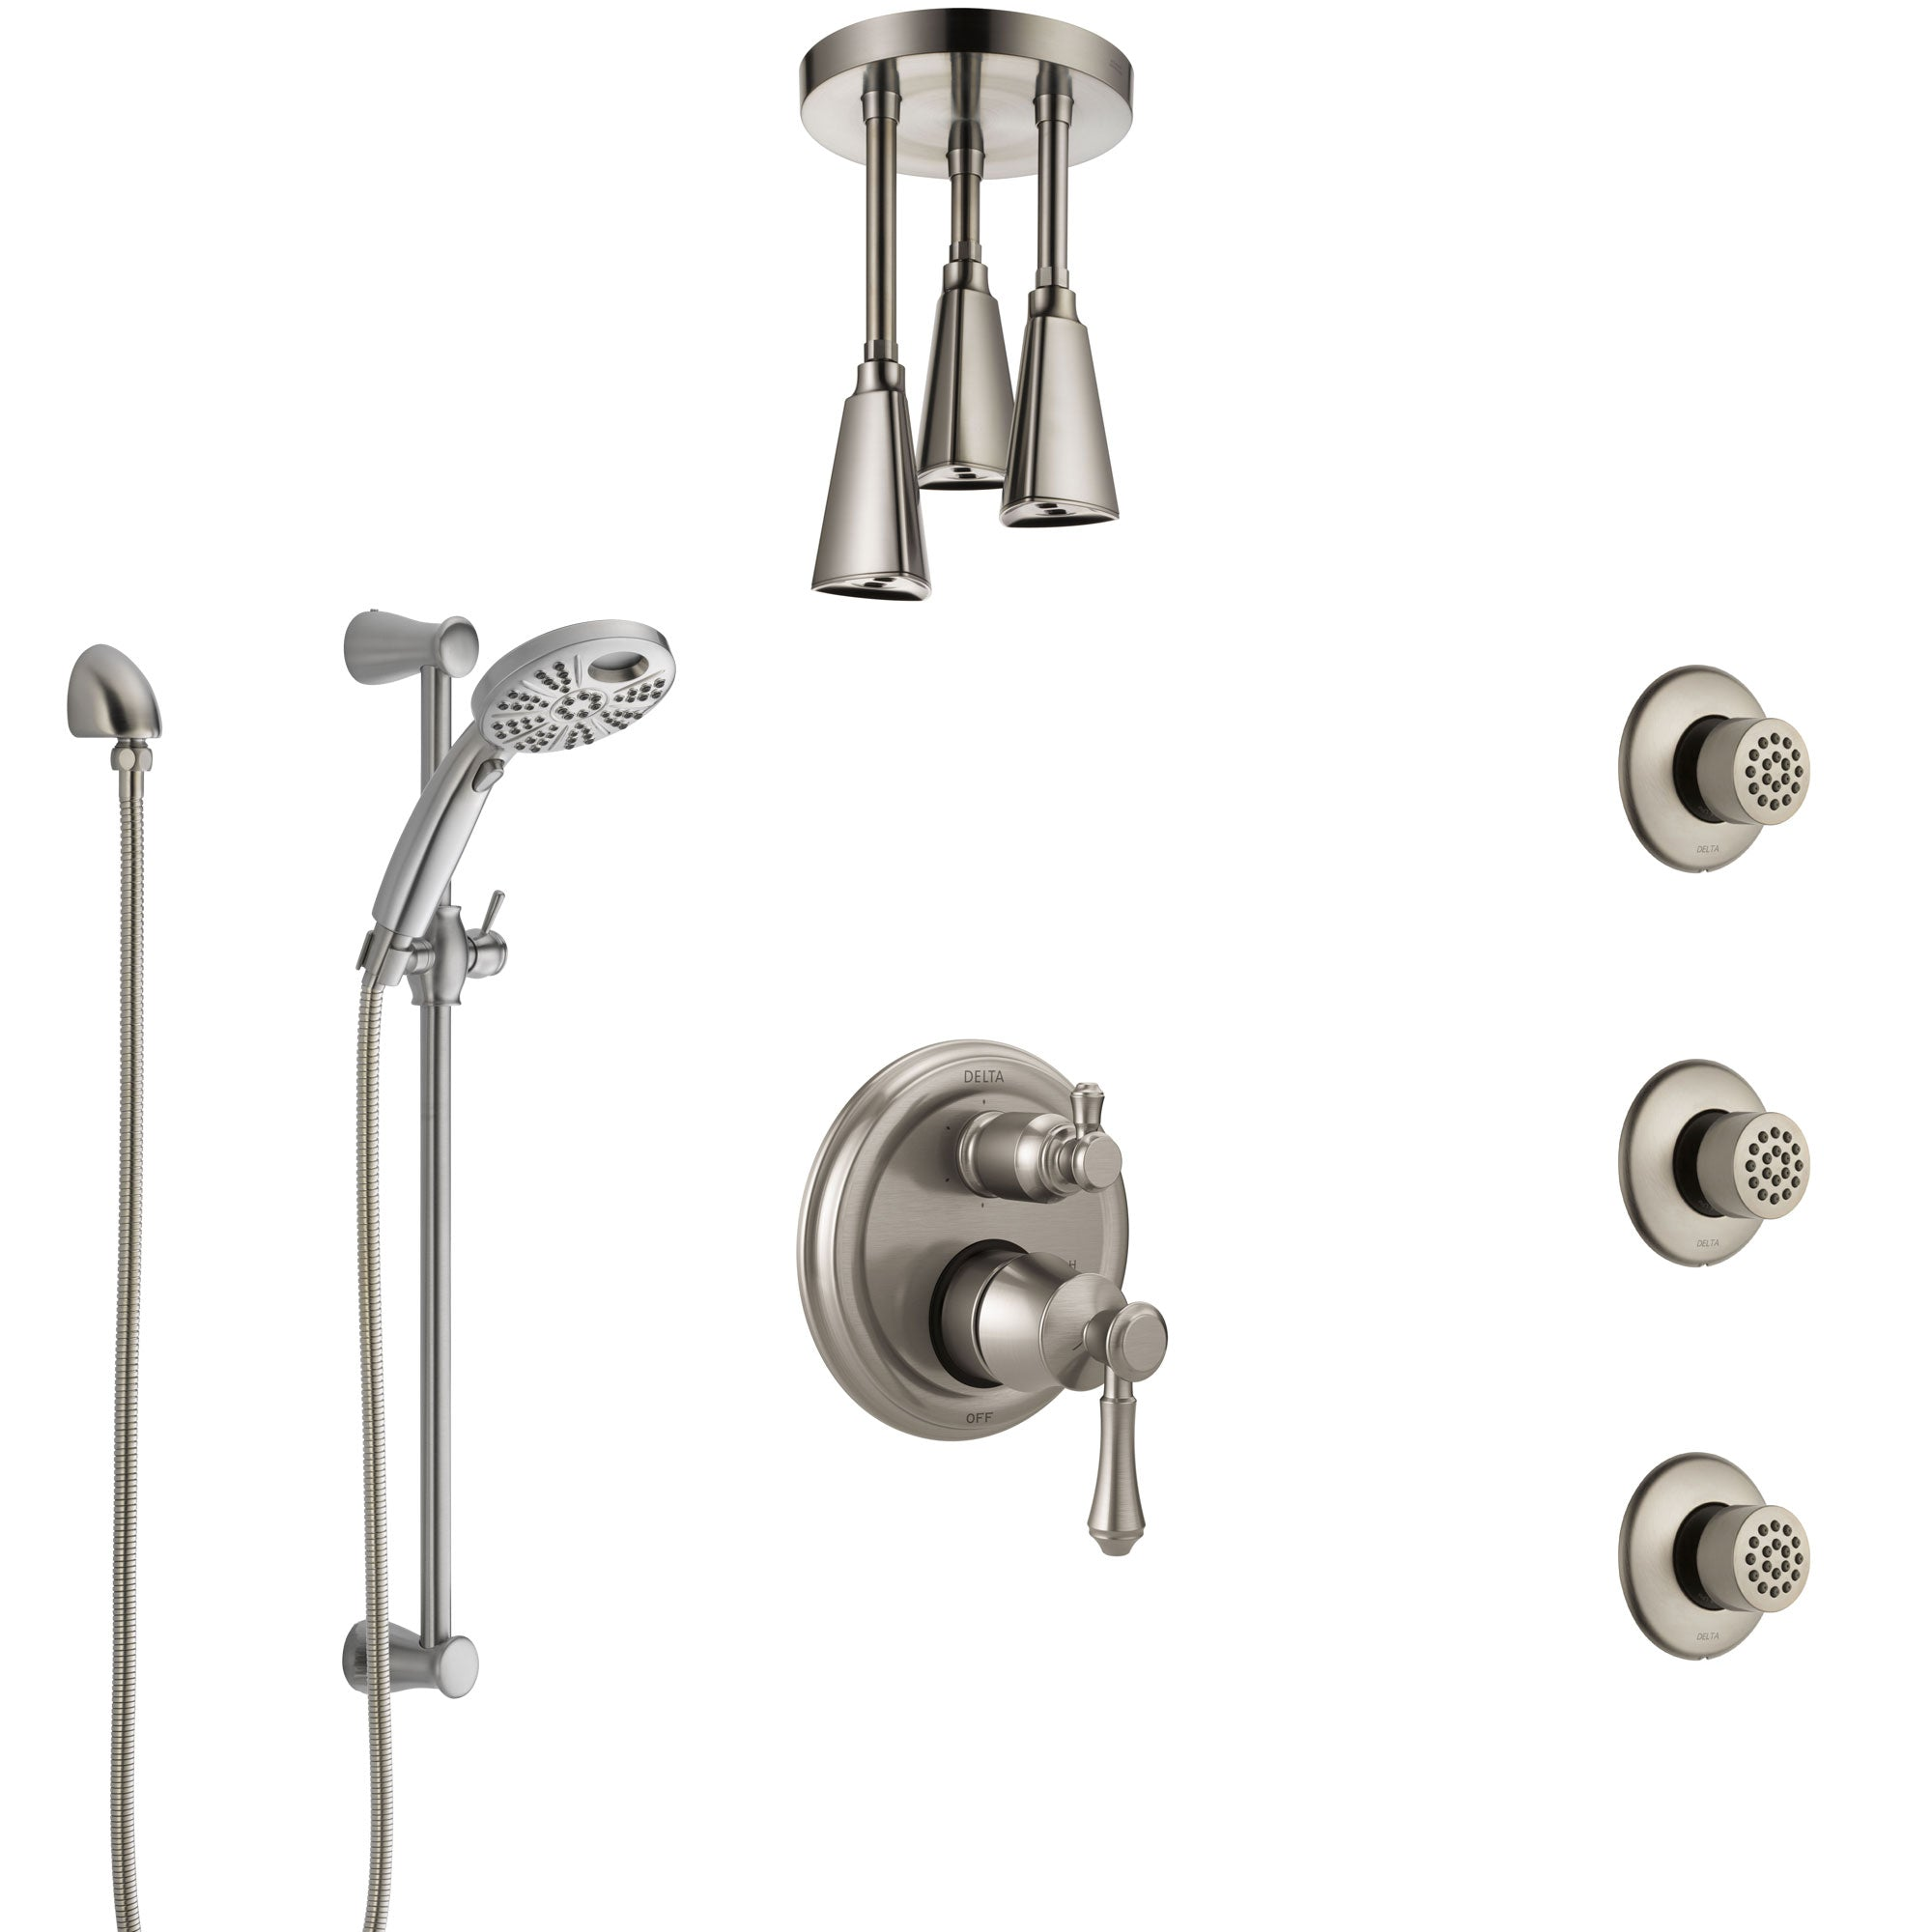 Delta Cassidy Stainless Steel Finish Integrated Diverter Shower System Control, Ceiling Showerhead, 3 Body Sprays, and Temp2O Hand Shower SS24997SS5